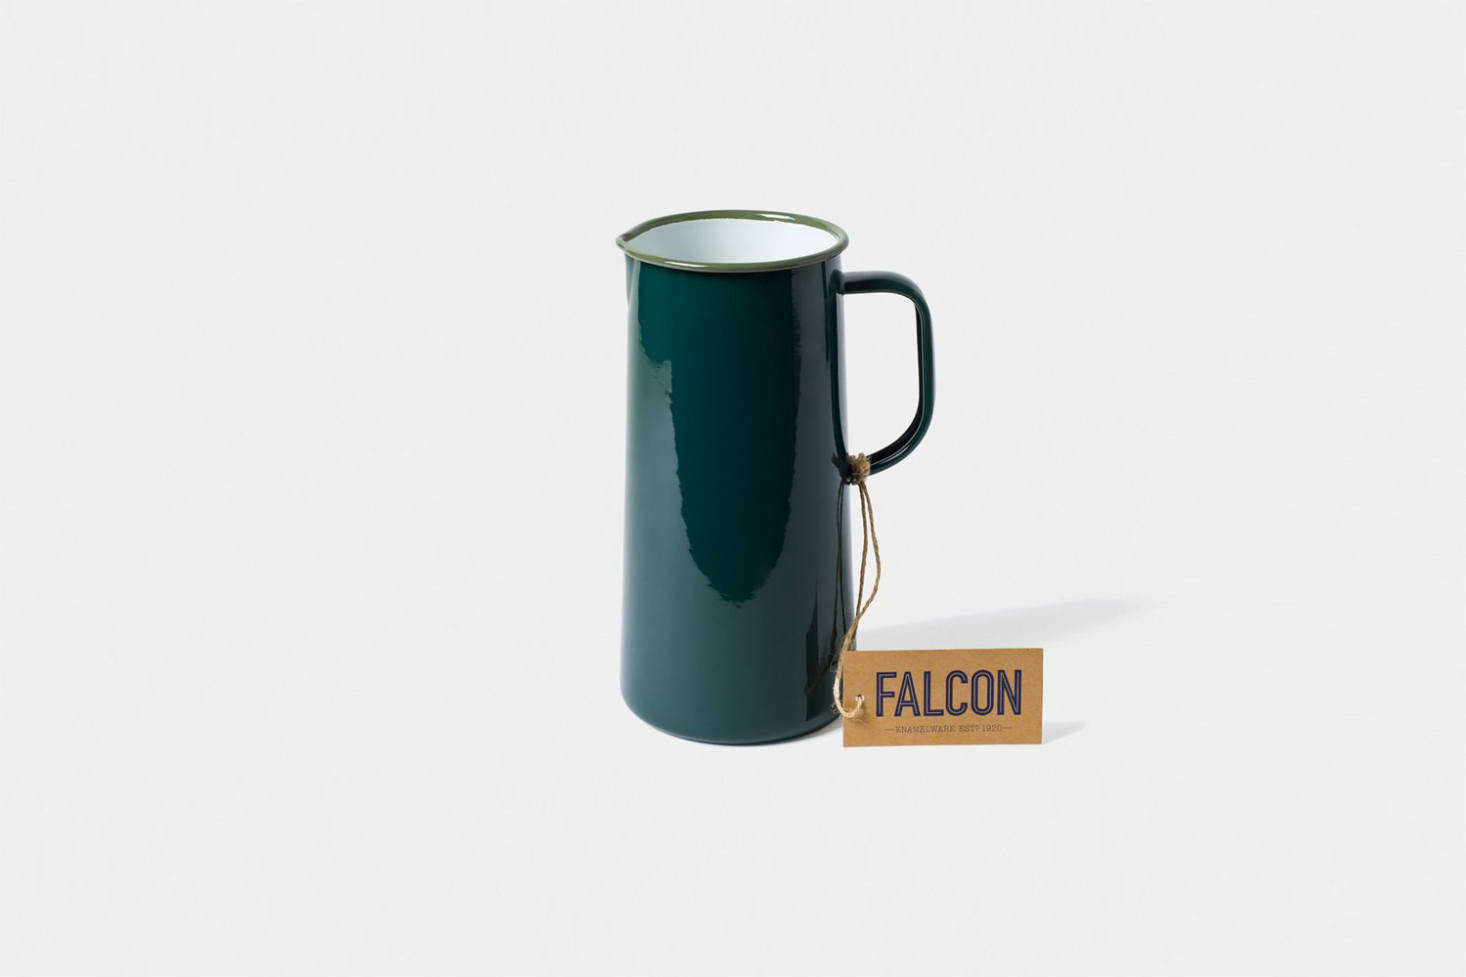 Green Falcon Enamelware can add a cozy cabin vibe to any interior. See Steal This Look: An Economical Kitchen in an English Beach House, Ikea Hack Included.